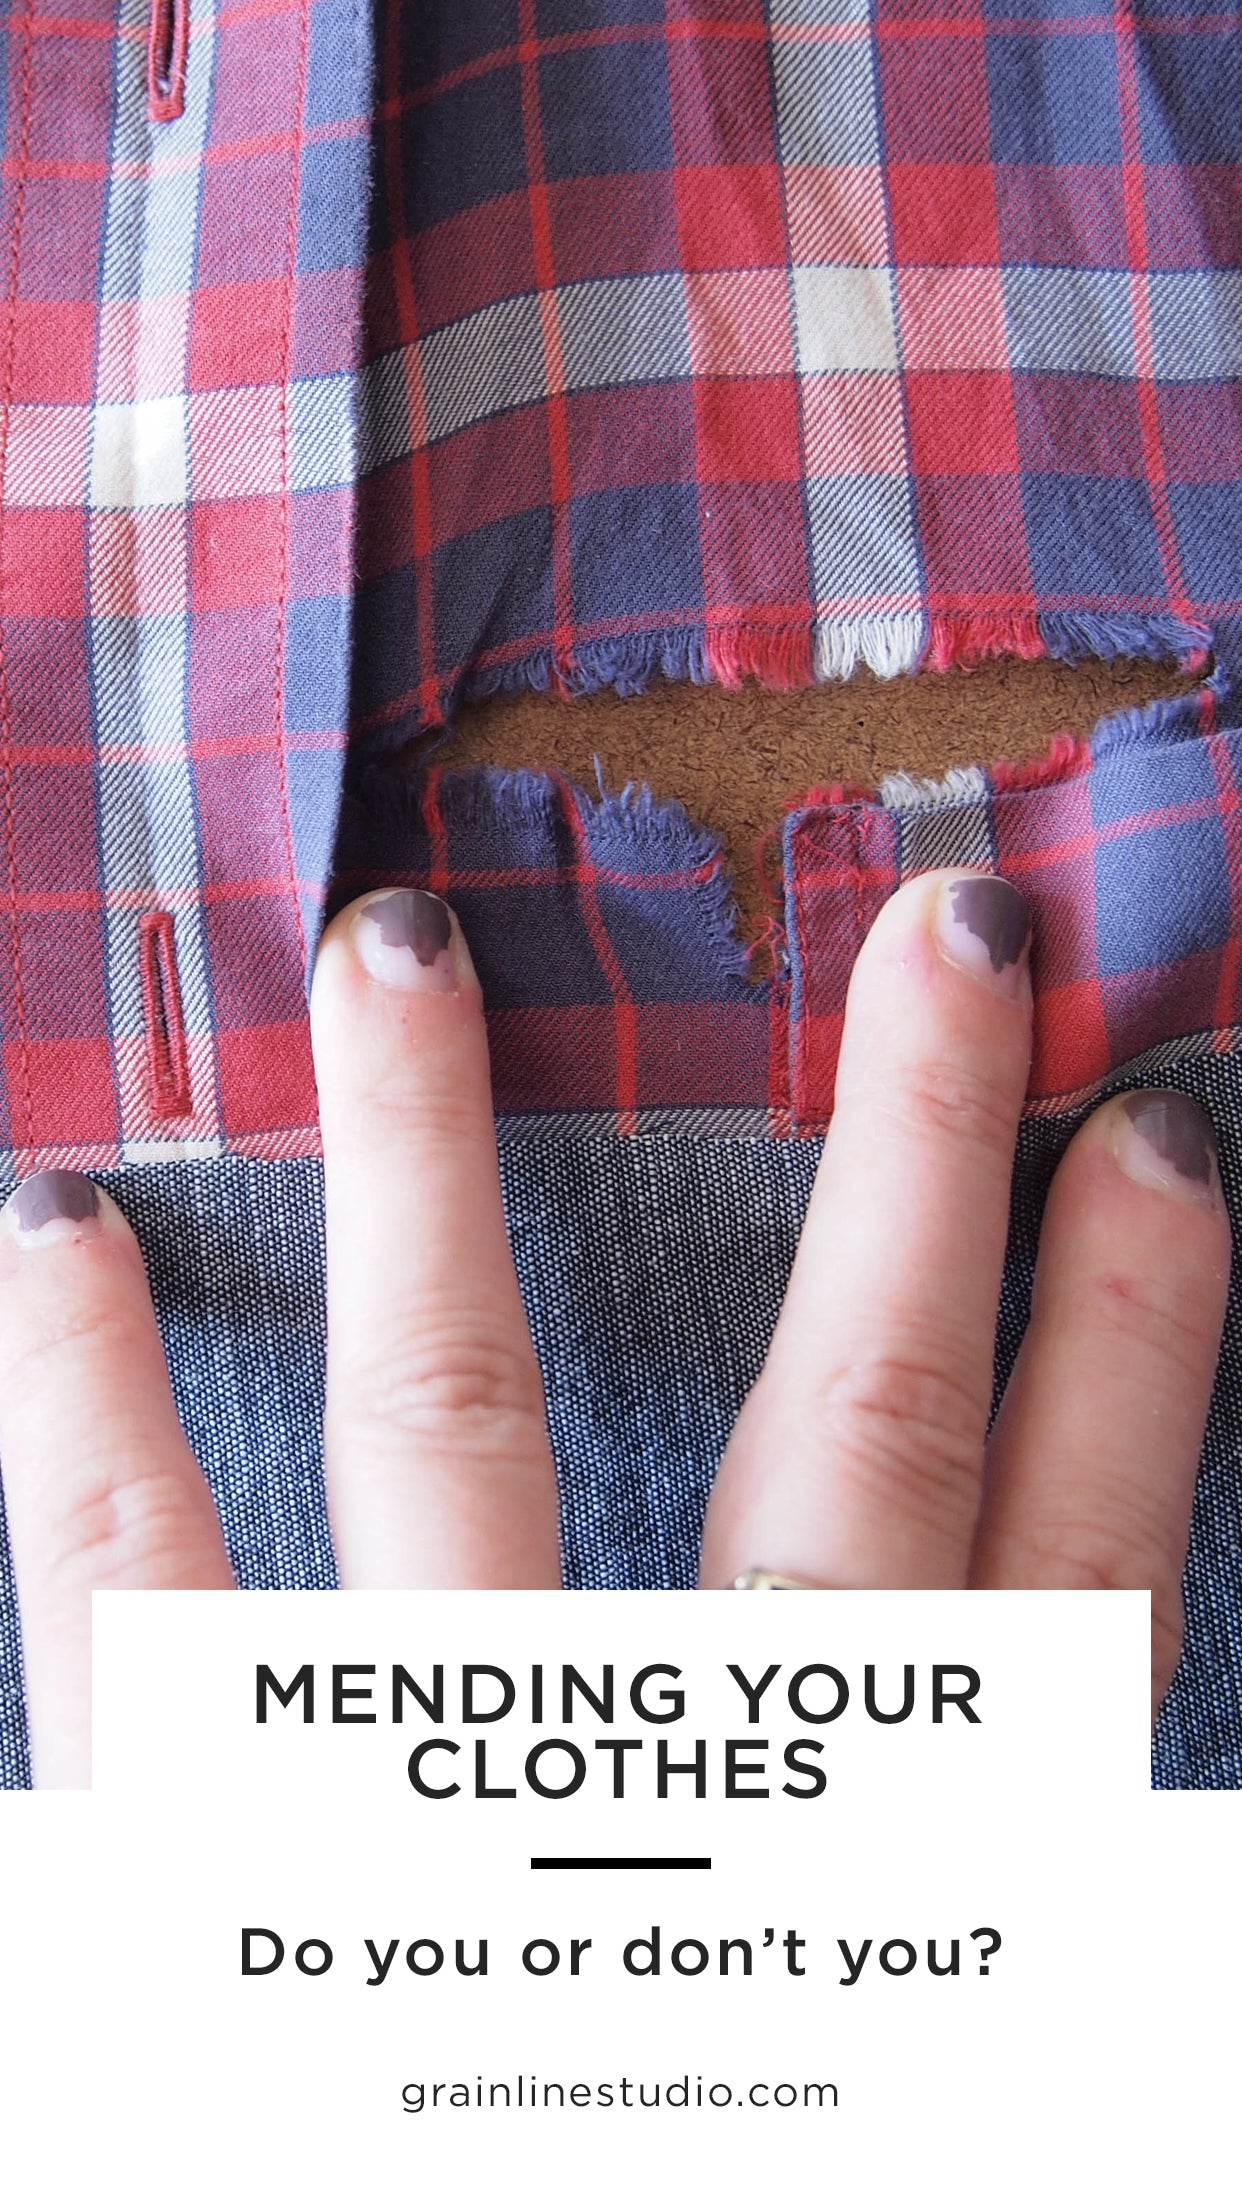 Mending - Do You or Don't You? | Grainline Studio